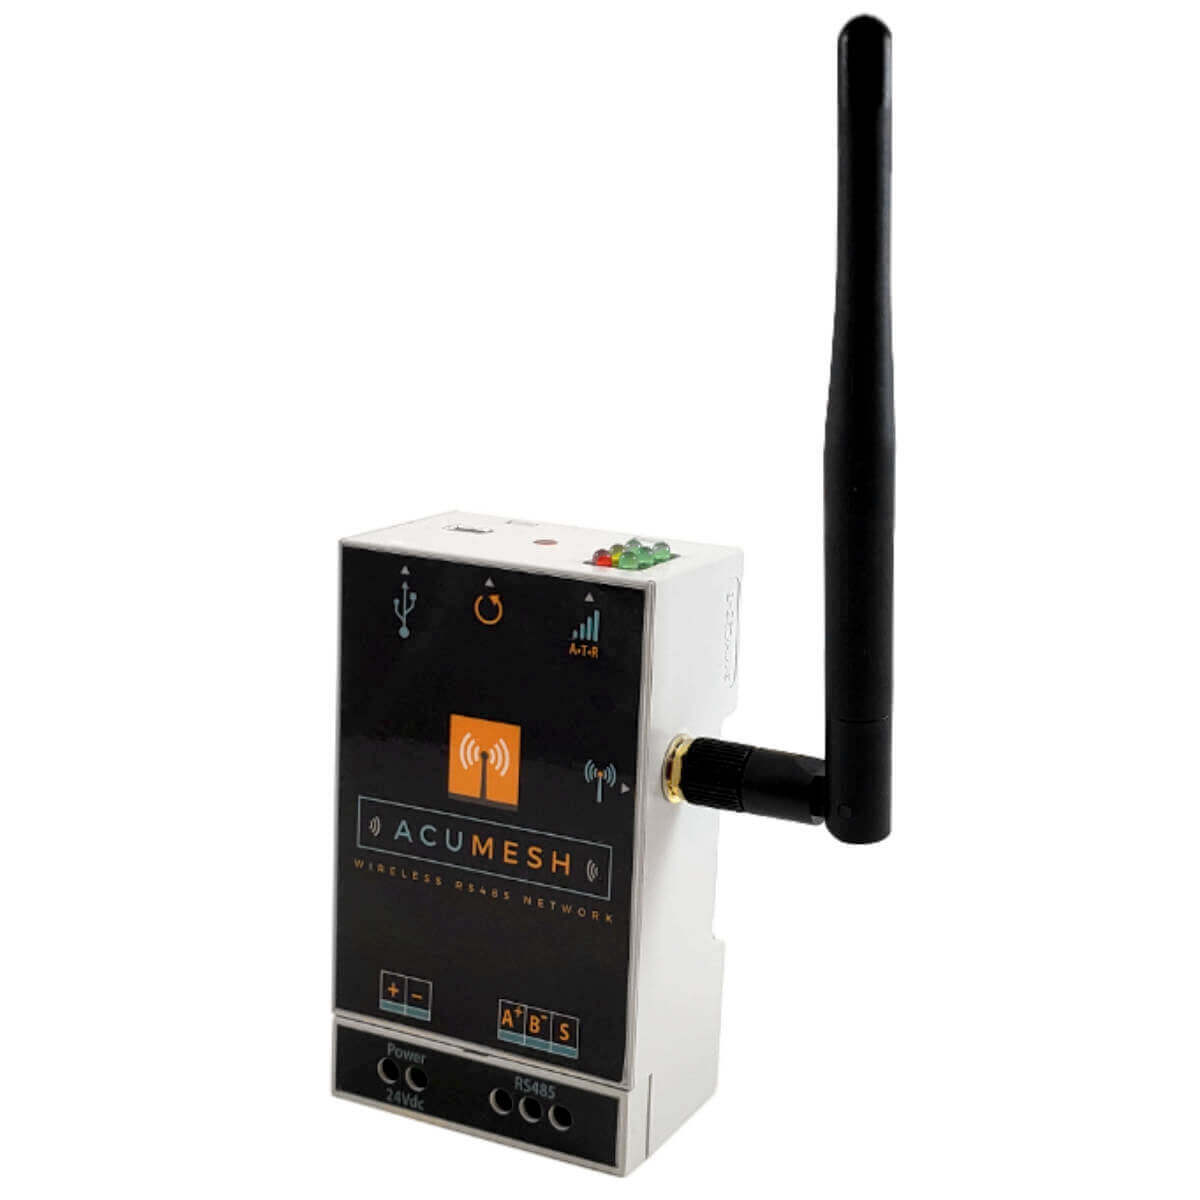 Wireless RS485 Transciever – AcuMesh Wireless RS485 Network